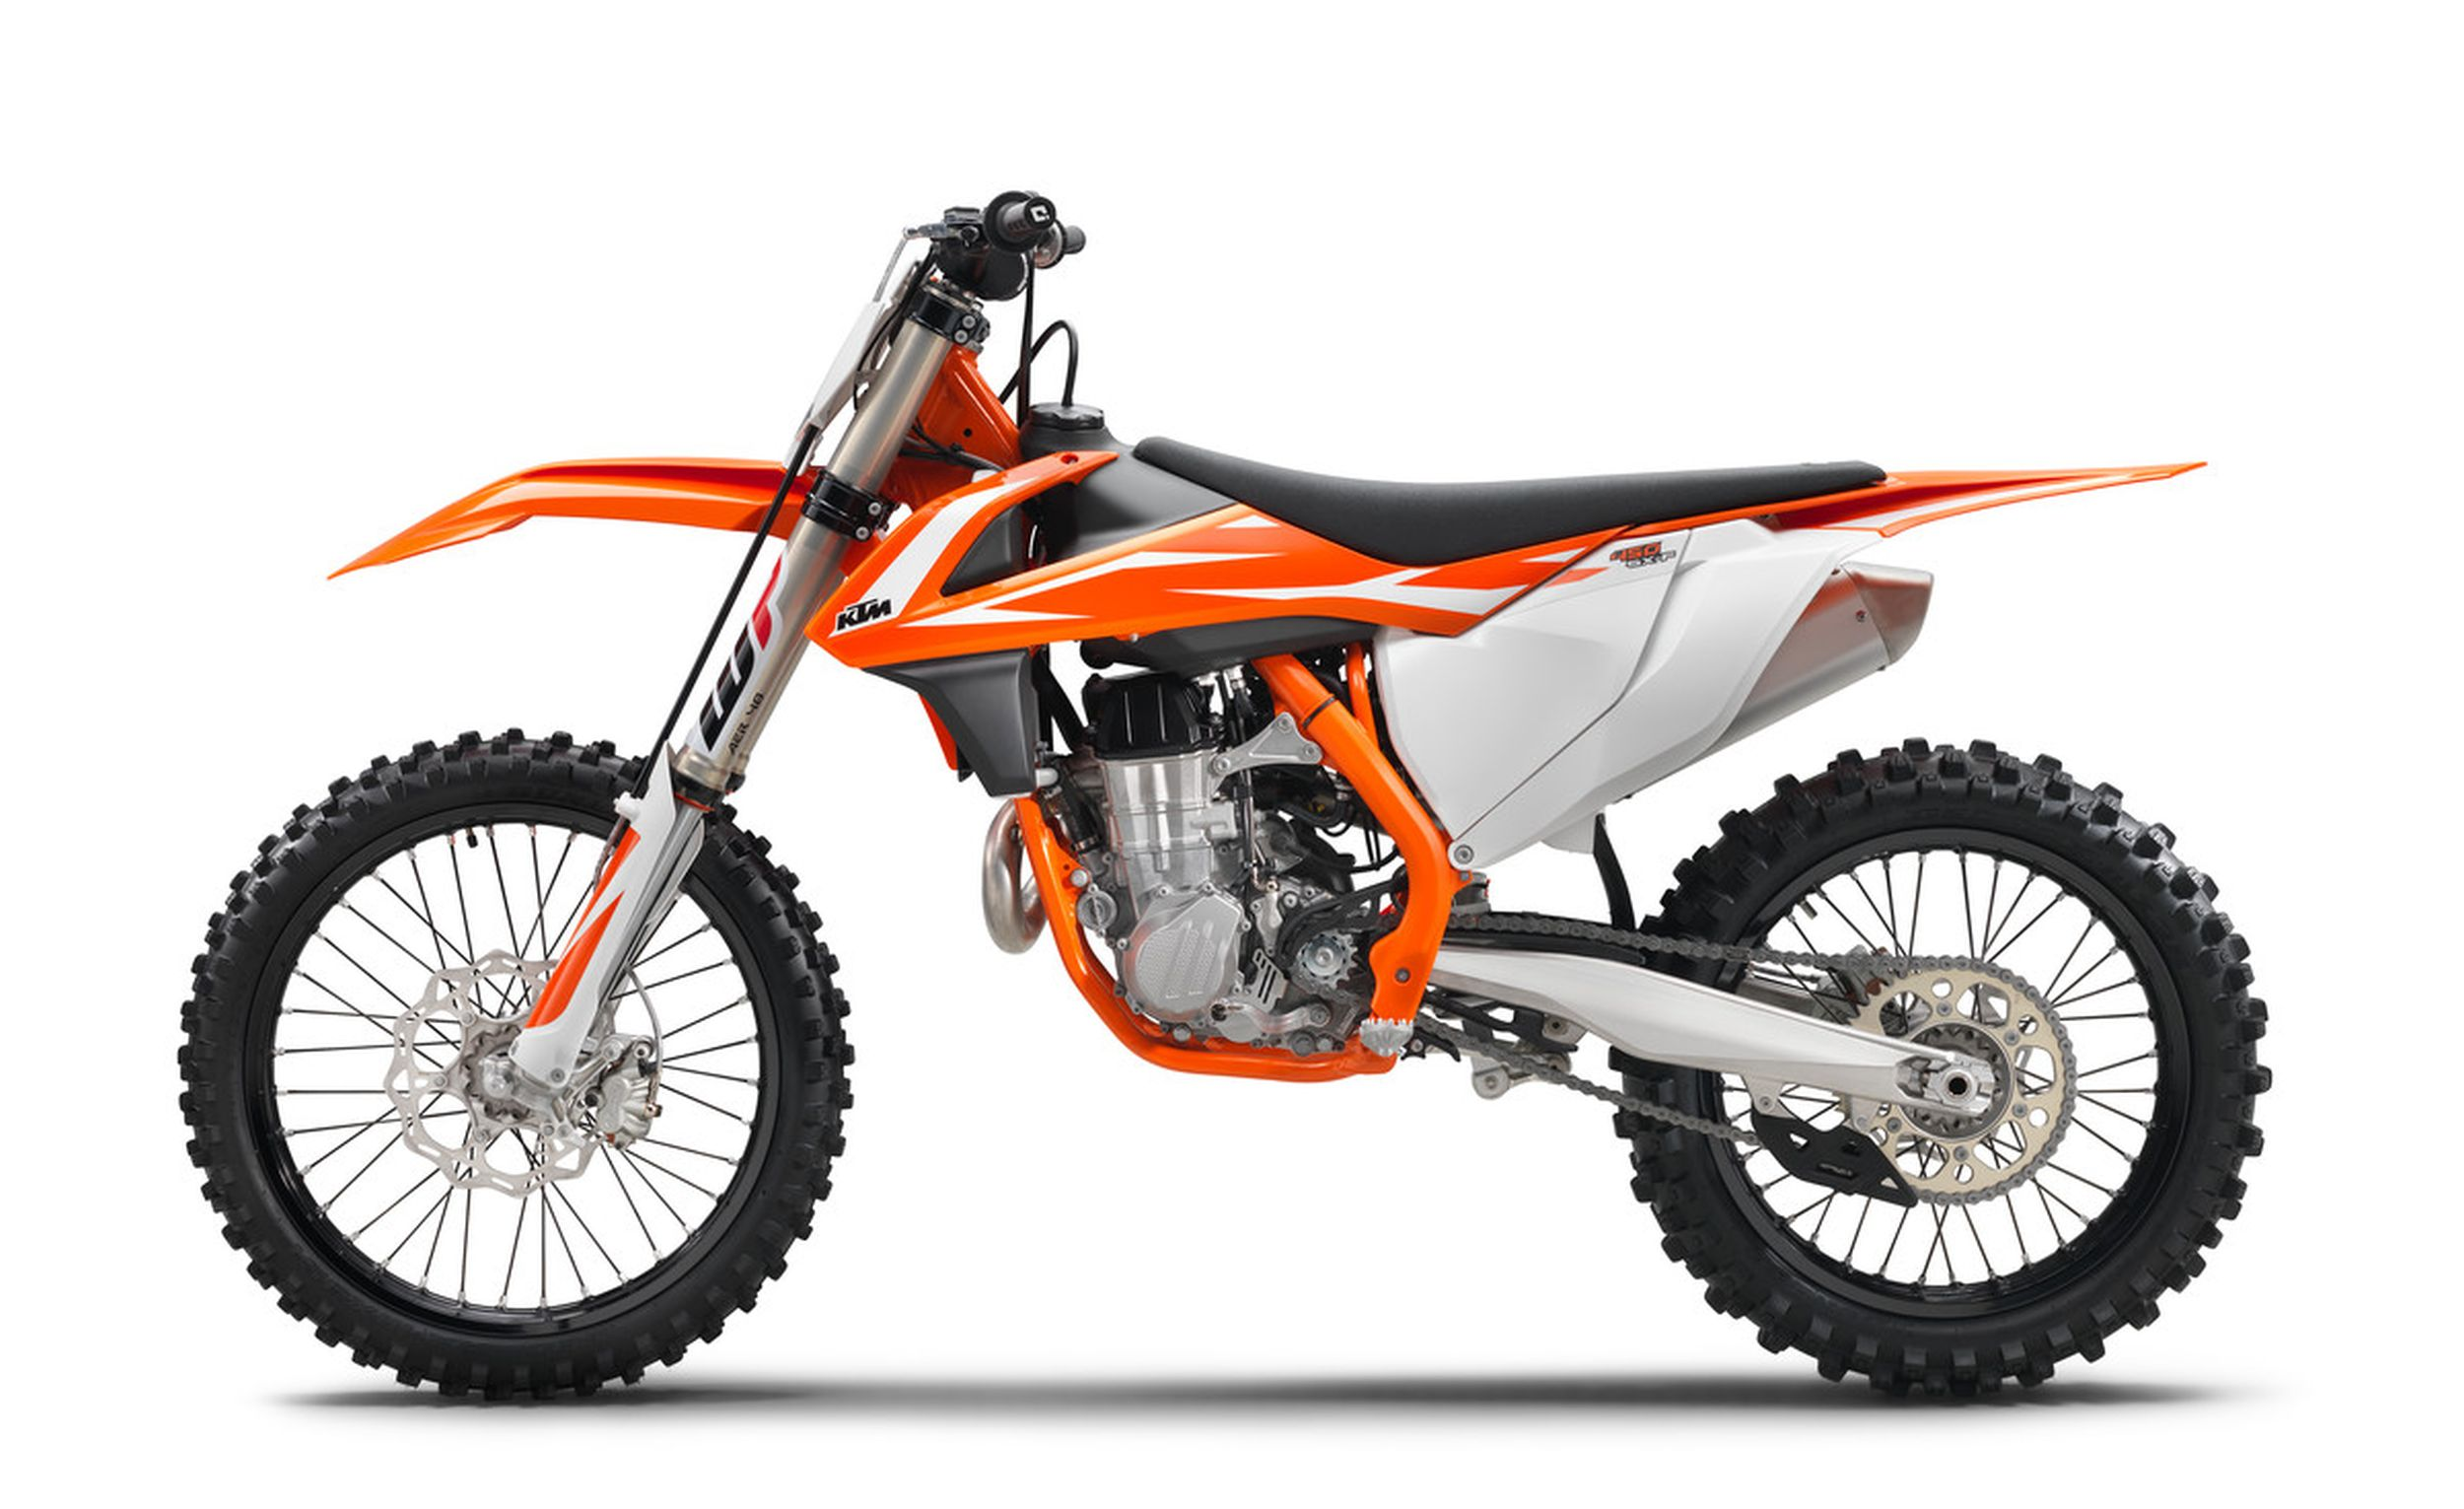 Ktm 450 sx f all technical data of the model 450 sx f - Moto crosse ktm ...